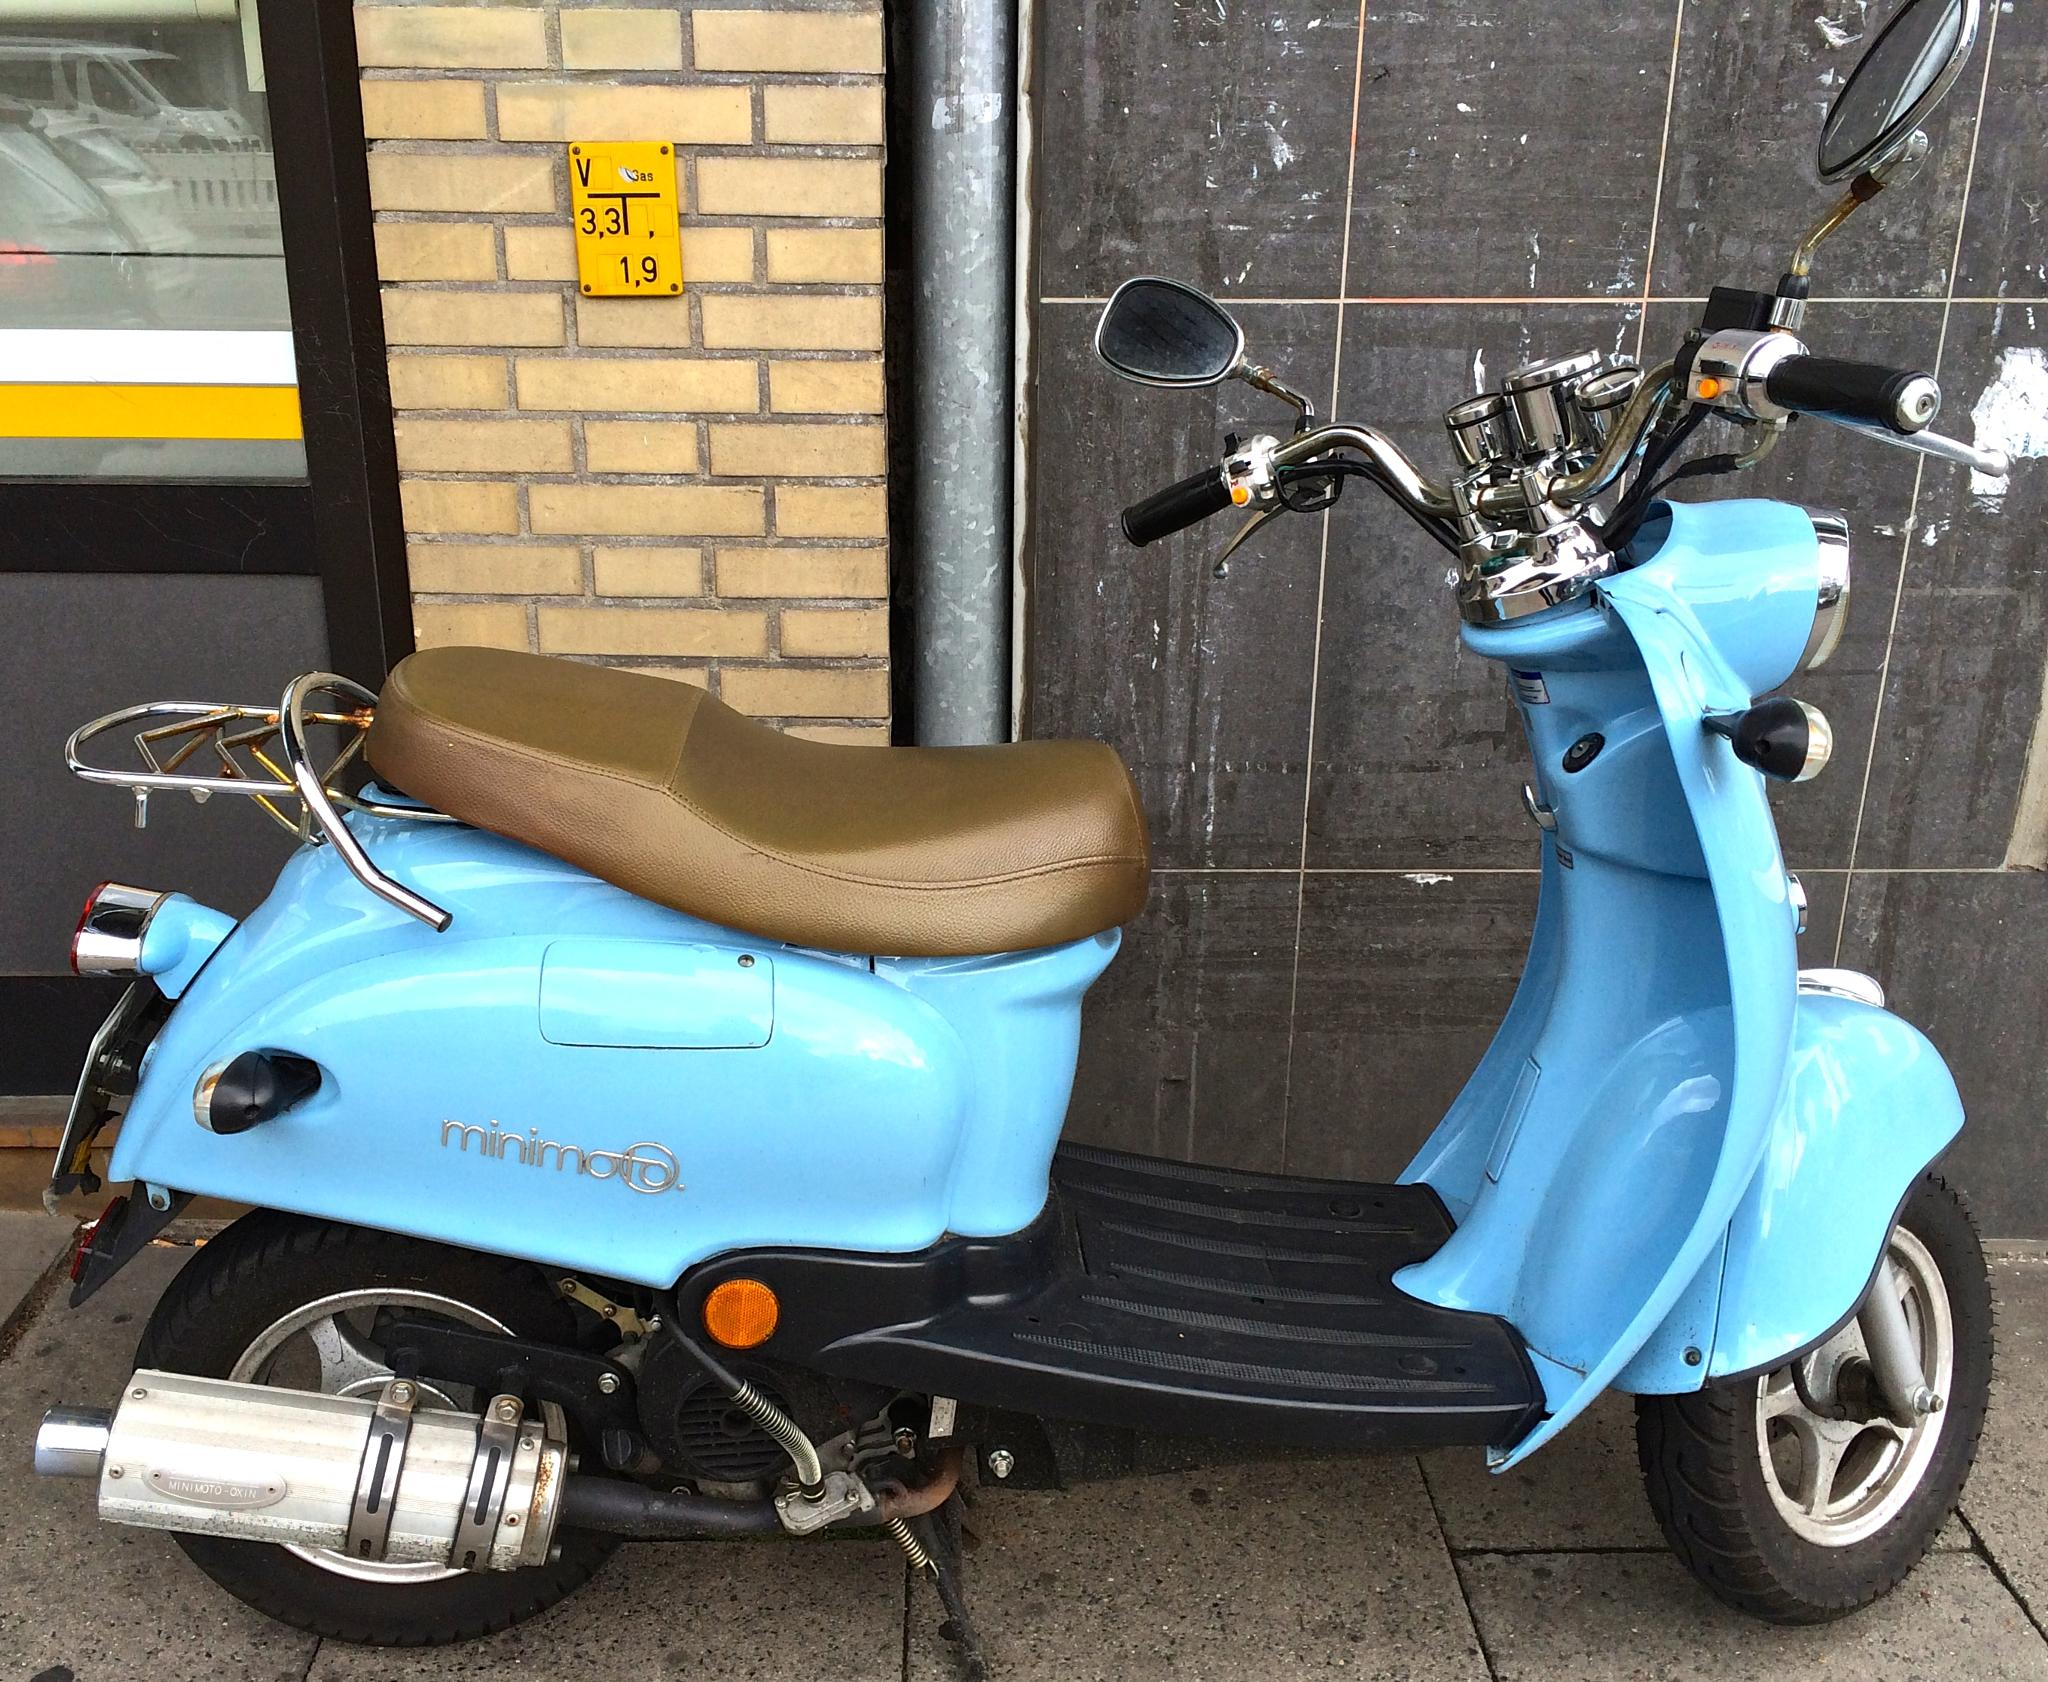 minimoto lightblue in the city by m.etemadieh